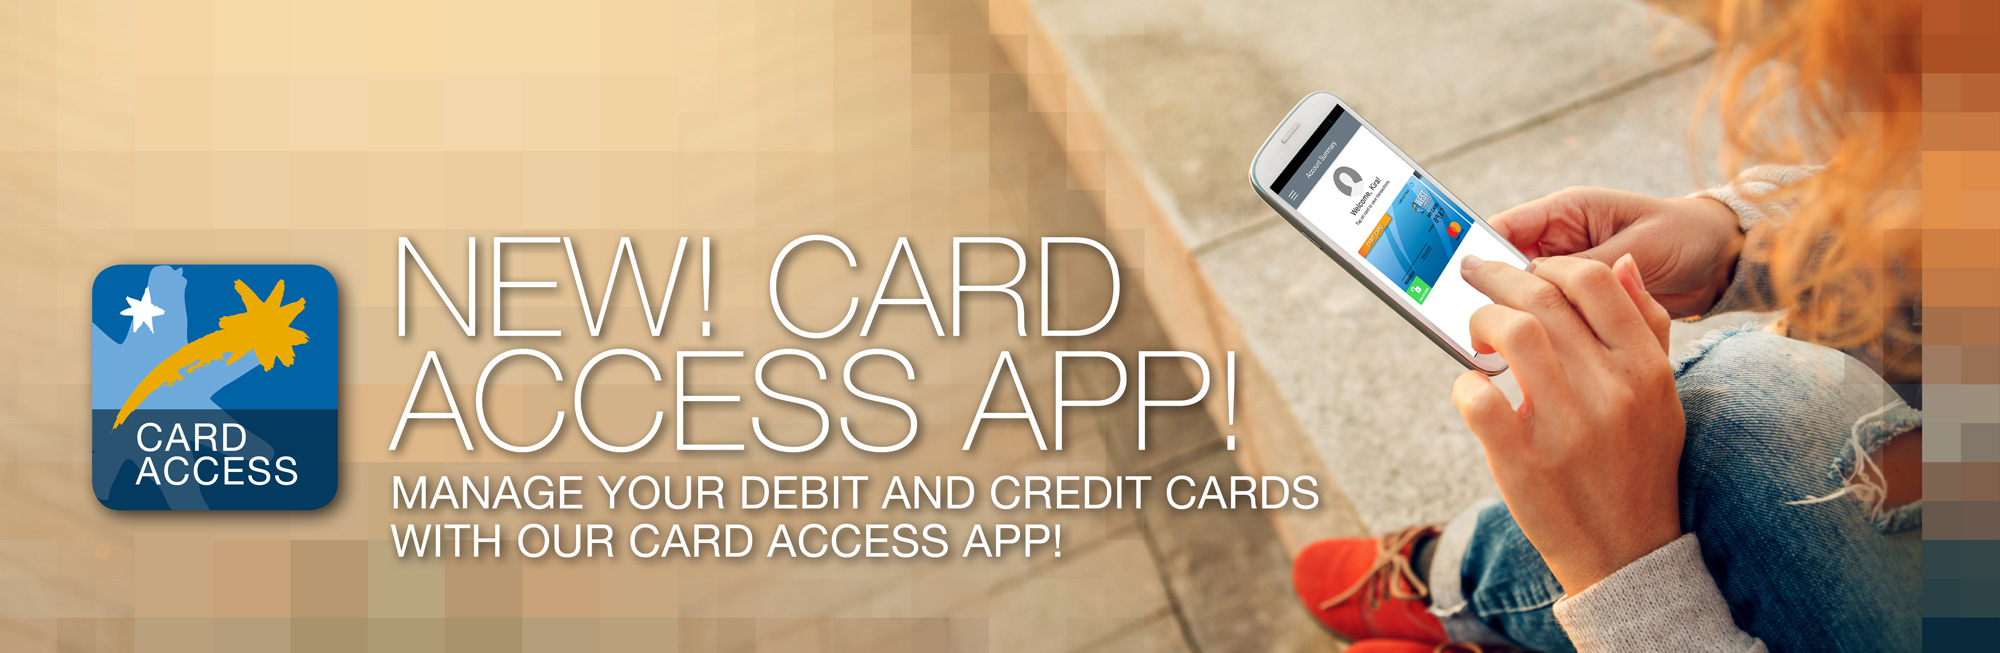 Download our new Credit and Debit Card Access App! Click to learn more.